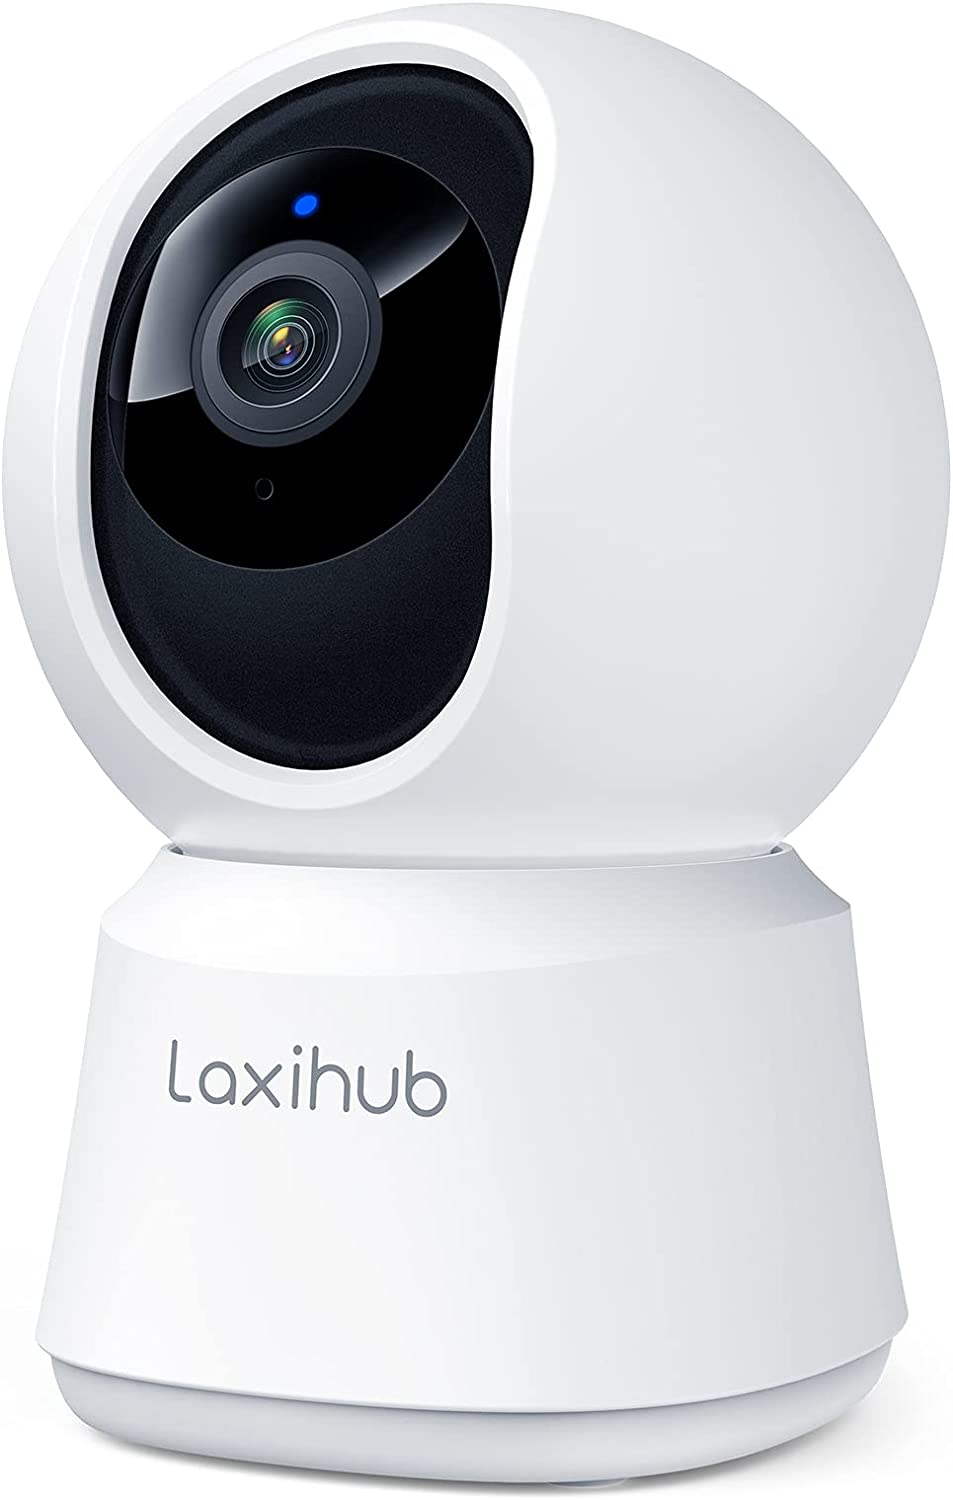 Laxihub Indoor Camera, P2 Baby/Pet Home Security WiFi Camera 1080p Fhd, Night Vision, 2-Way Audio, Ai Motion Detection Works with Alexa & Google Assistant